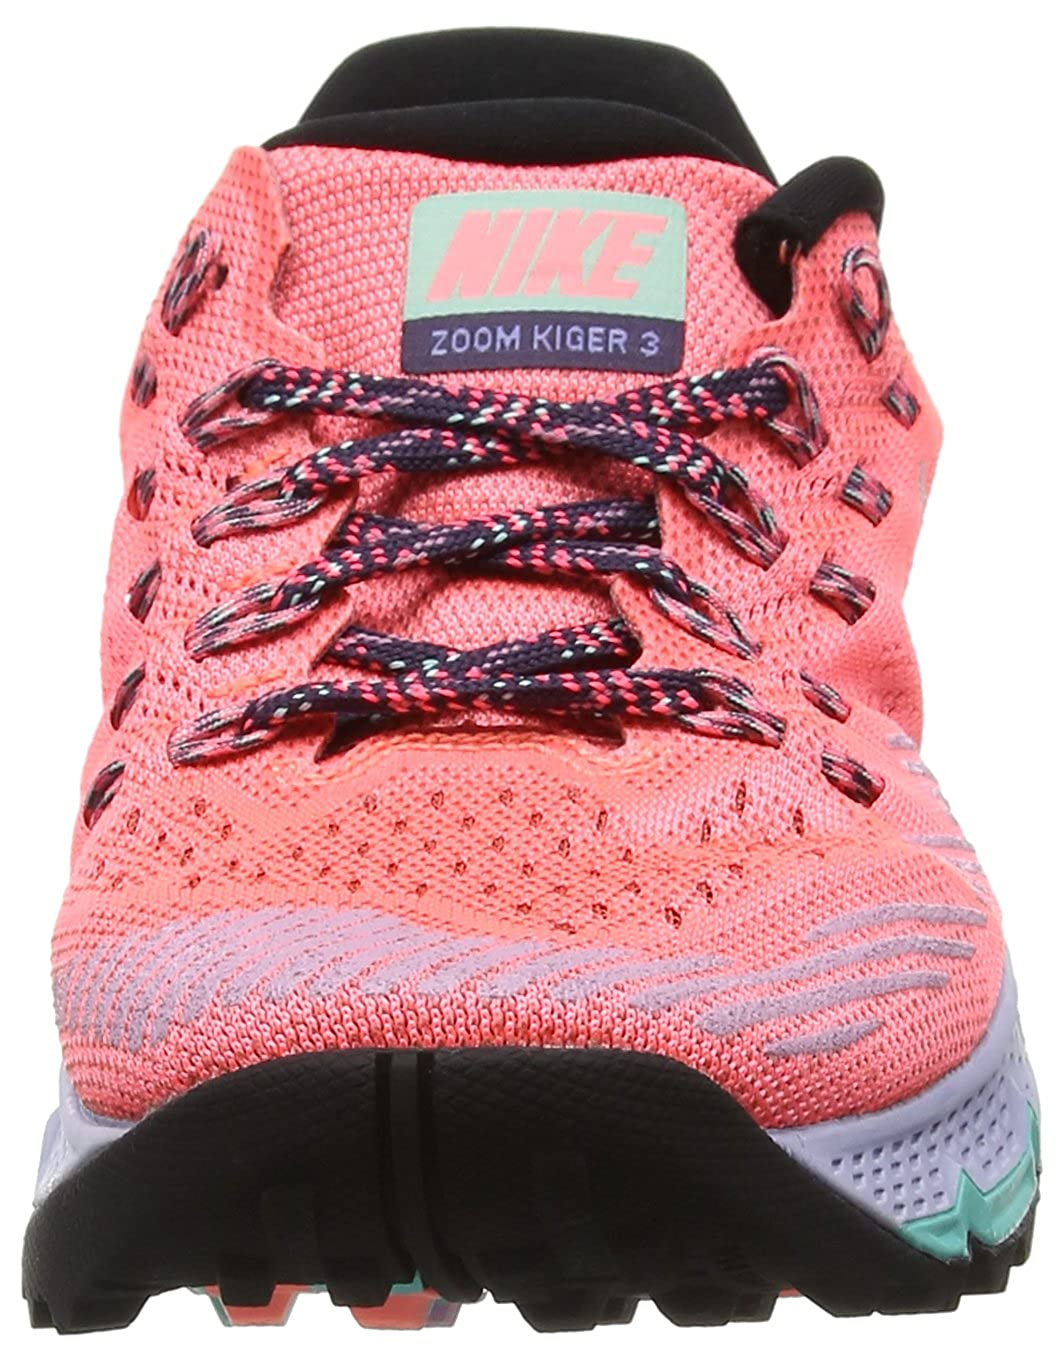 Nike W Air Zoom Terra Kiger 3, Scarpe Running Donna, Rosso (Lava Glow/Orchid/Black/Hyper Turquoise), 36.5 EU